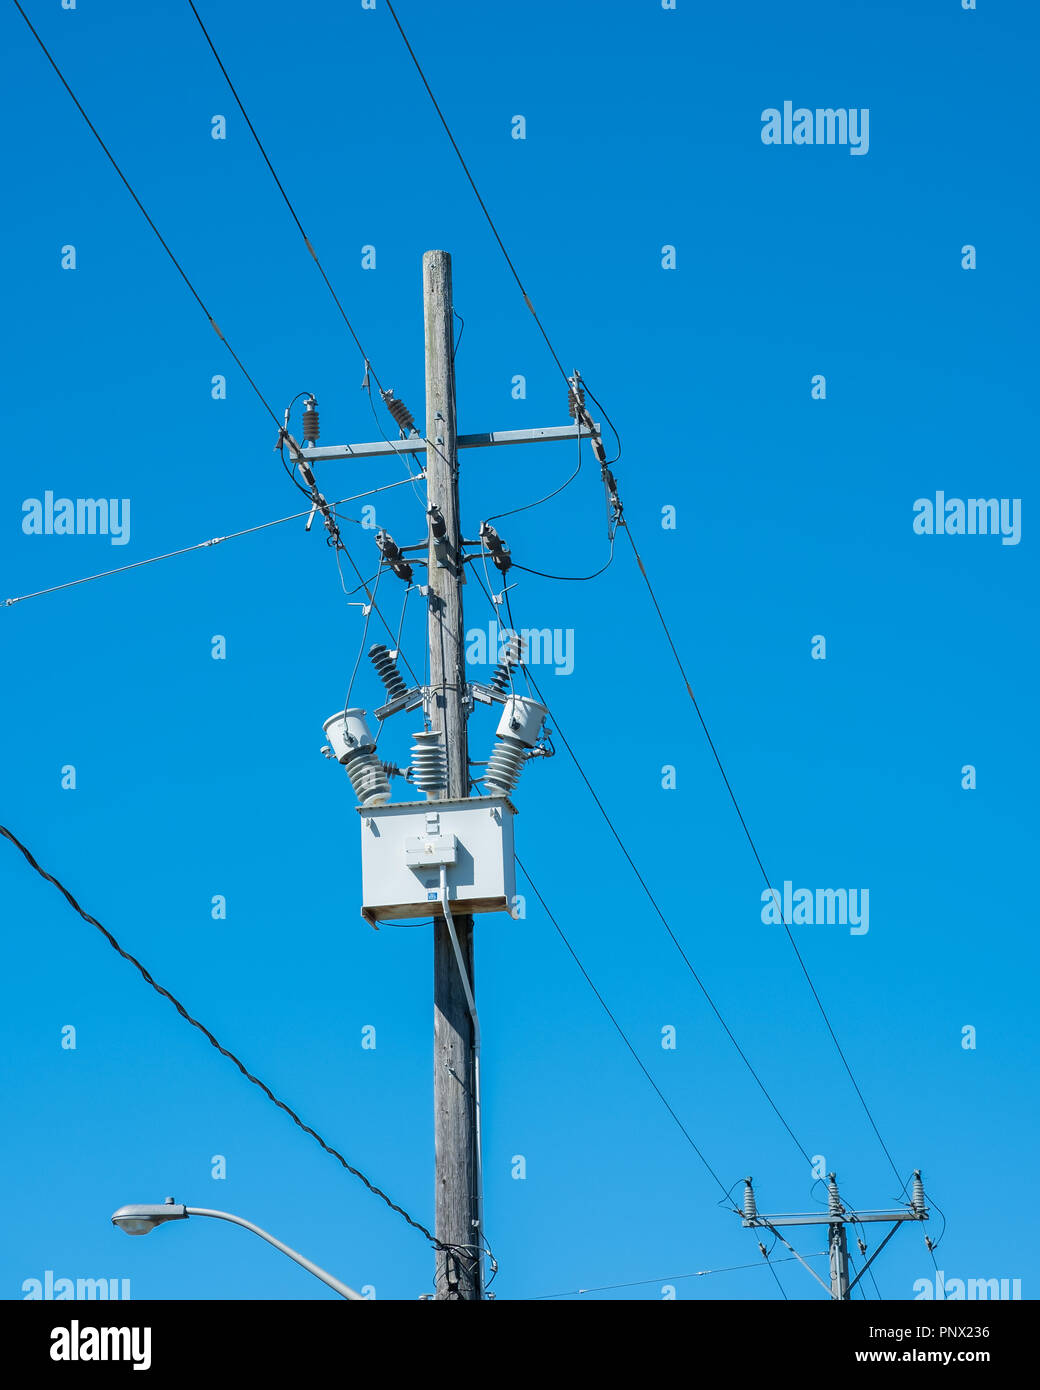 High voltage wires and a transformer box against a clear essential services, service, blue sky with copy space. - Stock Image